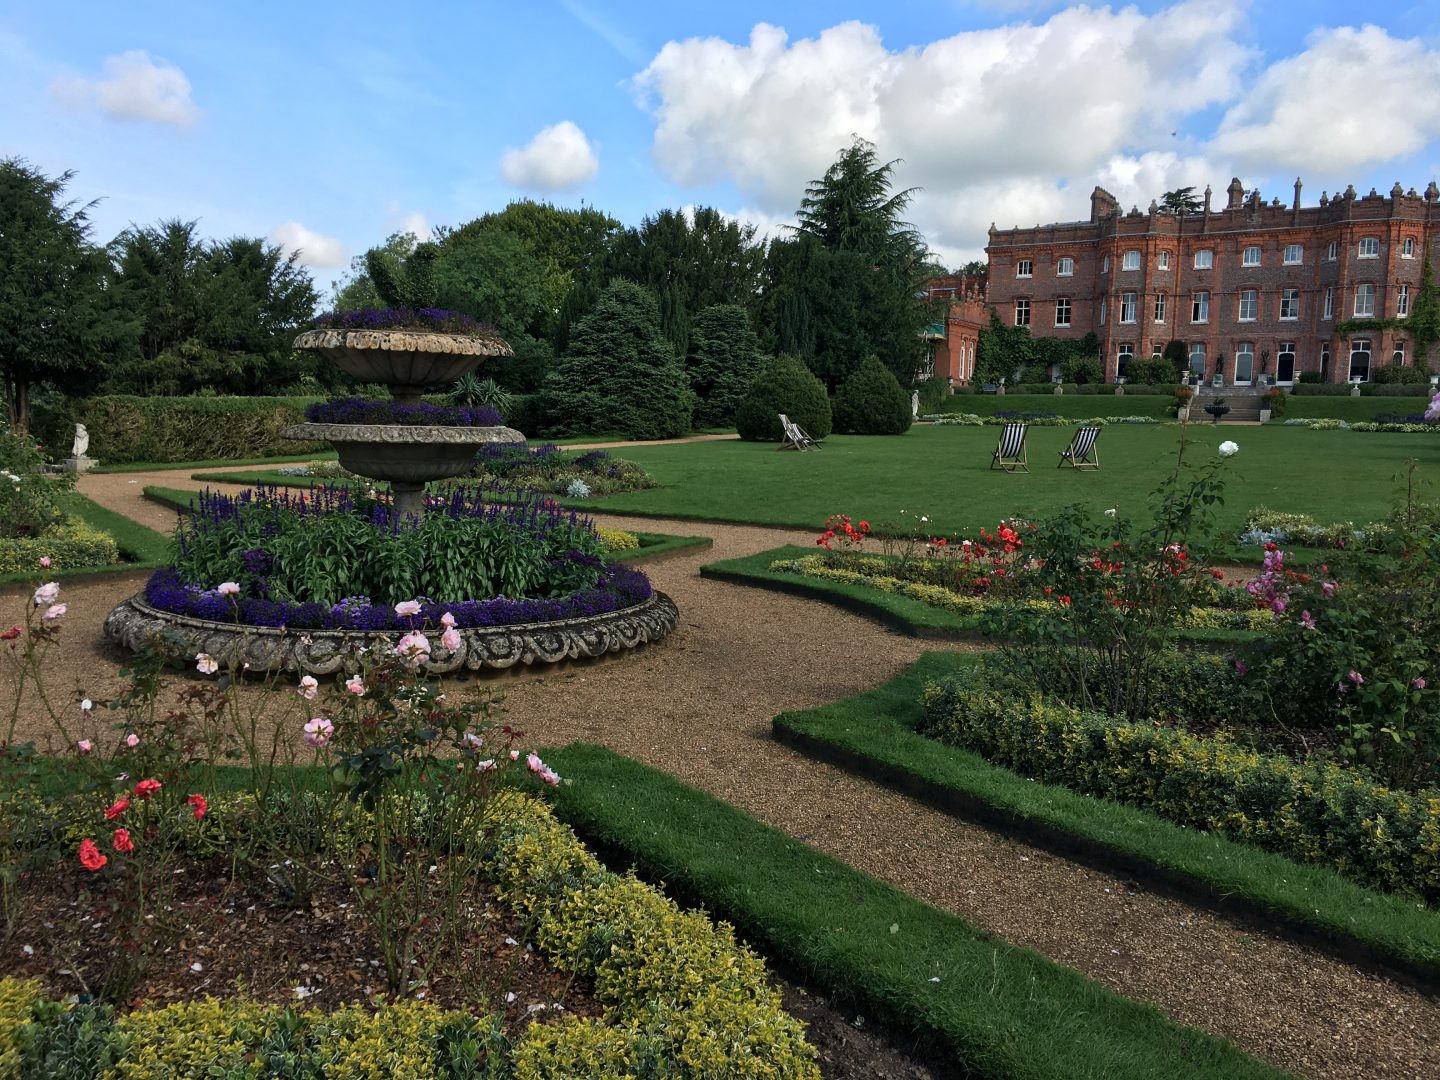 Family days out: Hughenden Manor